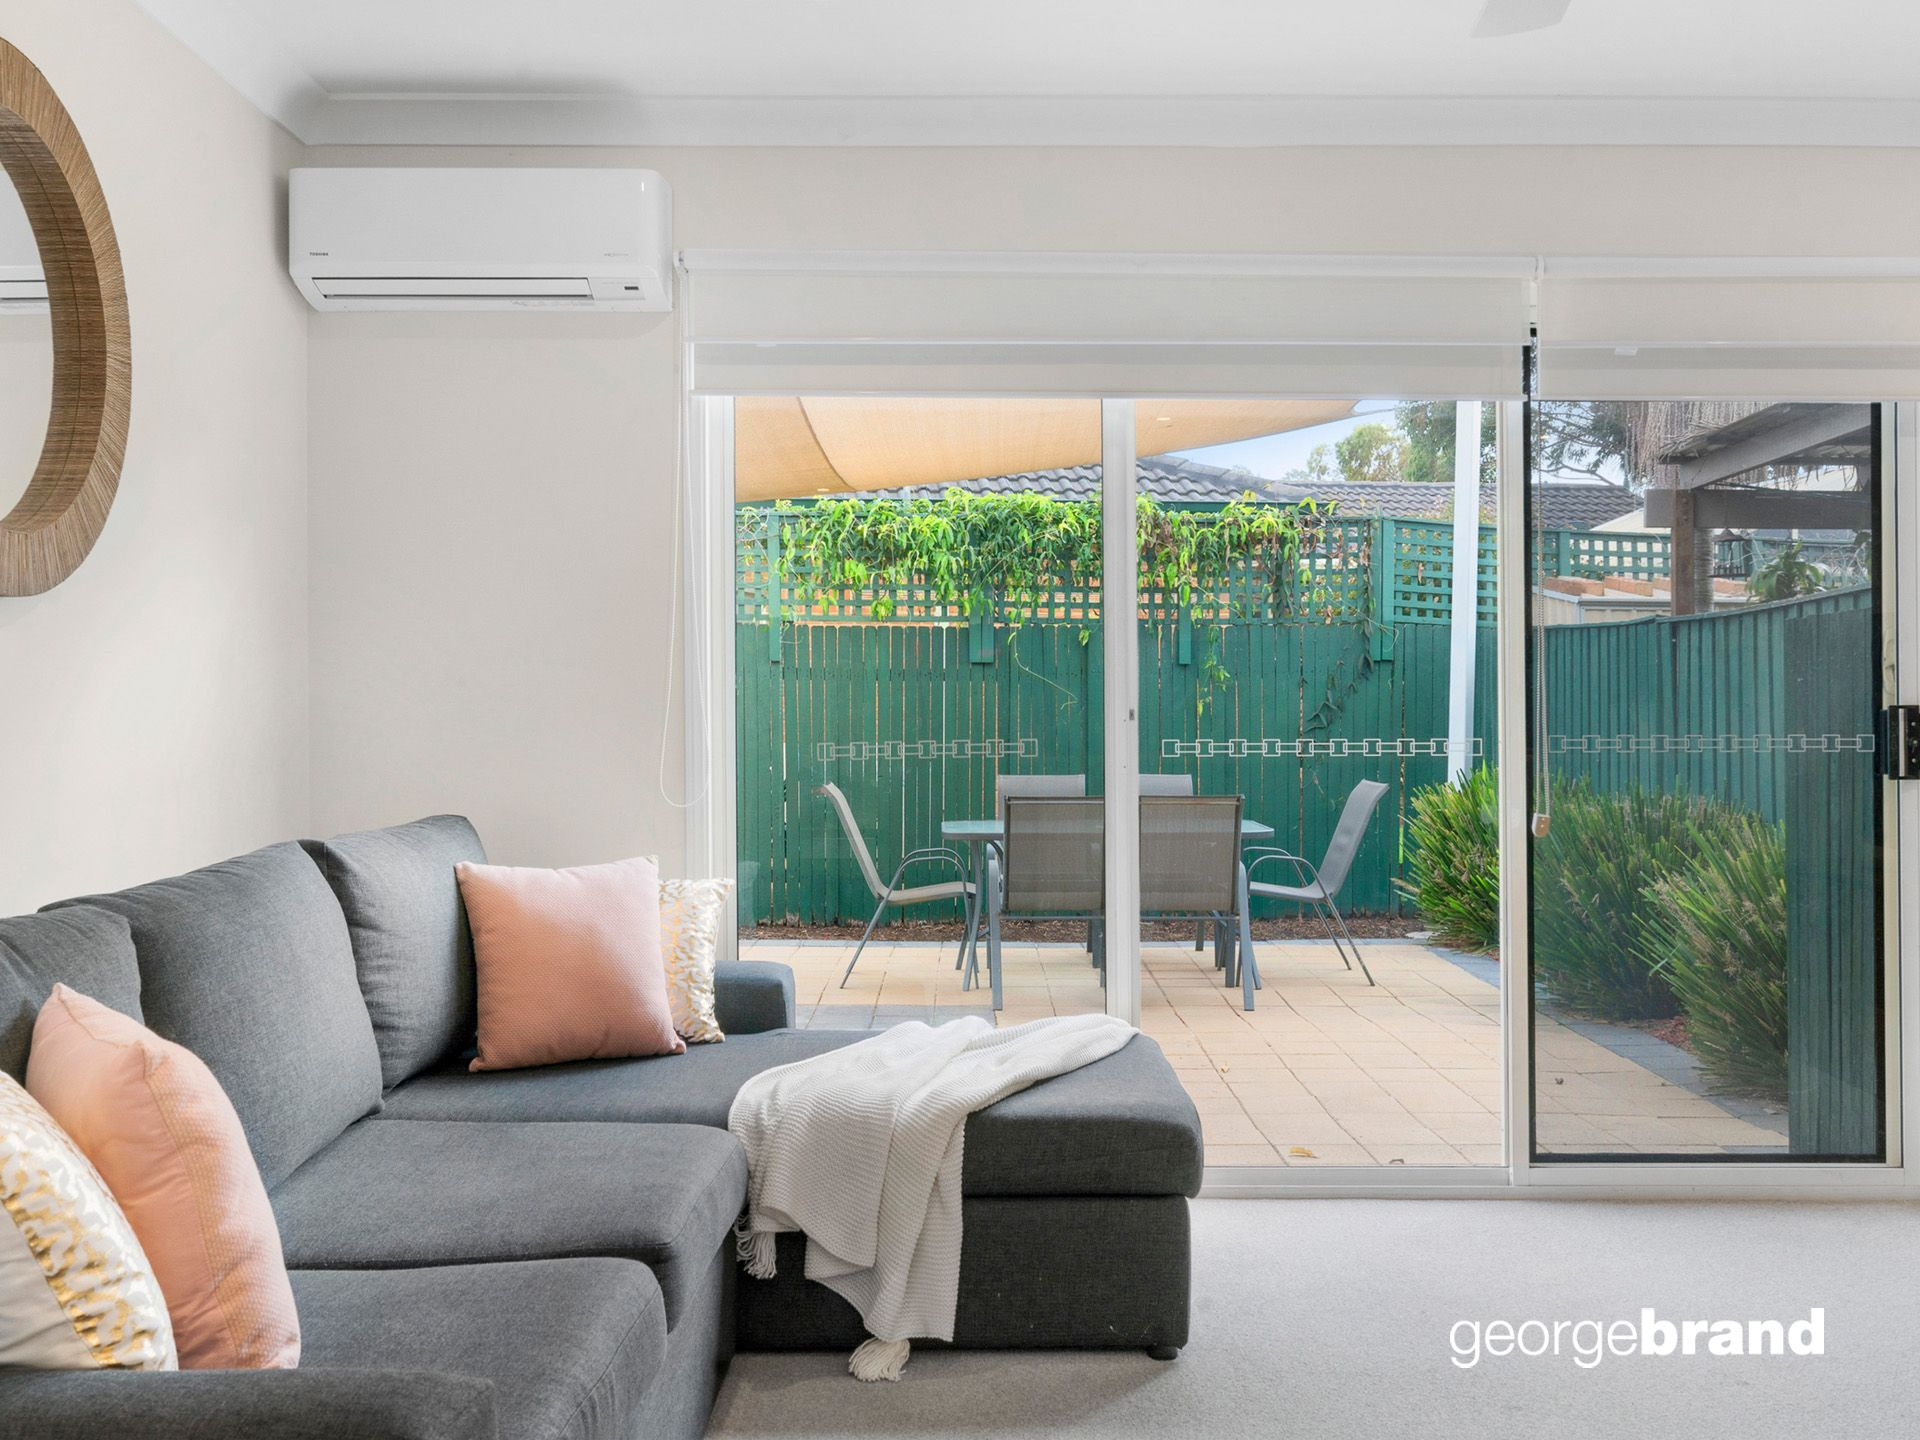 Bateau Bay Duplex Single Level Torrens Title Duplex With